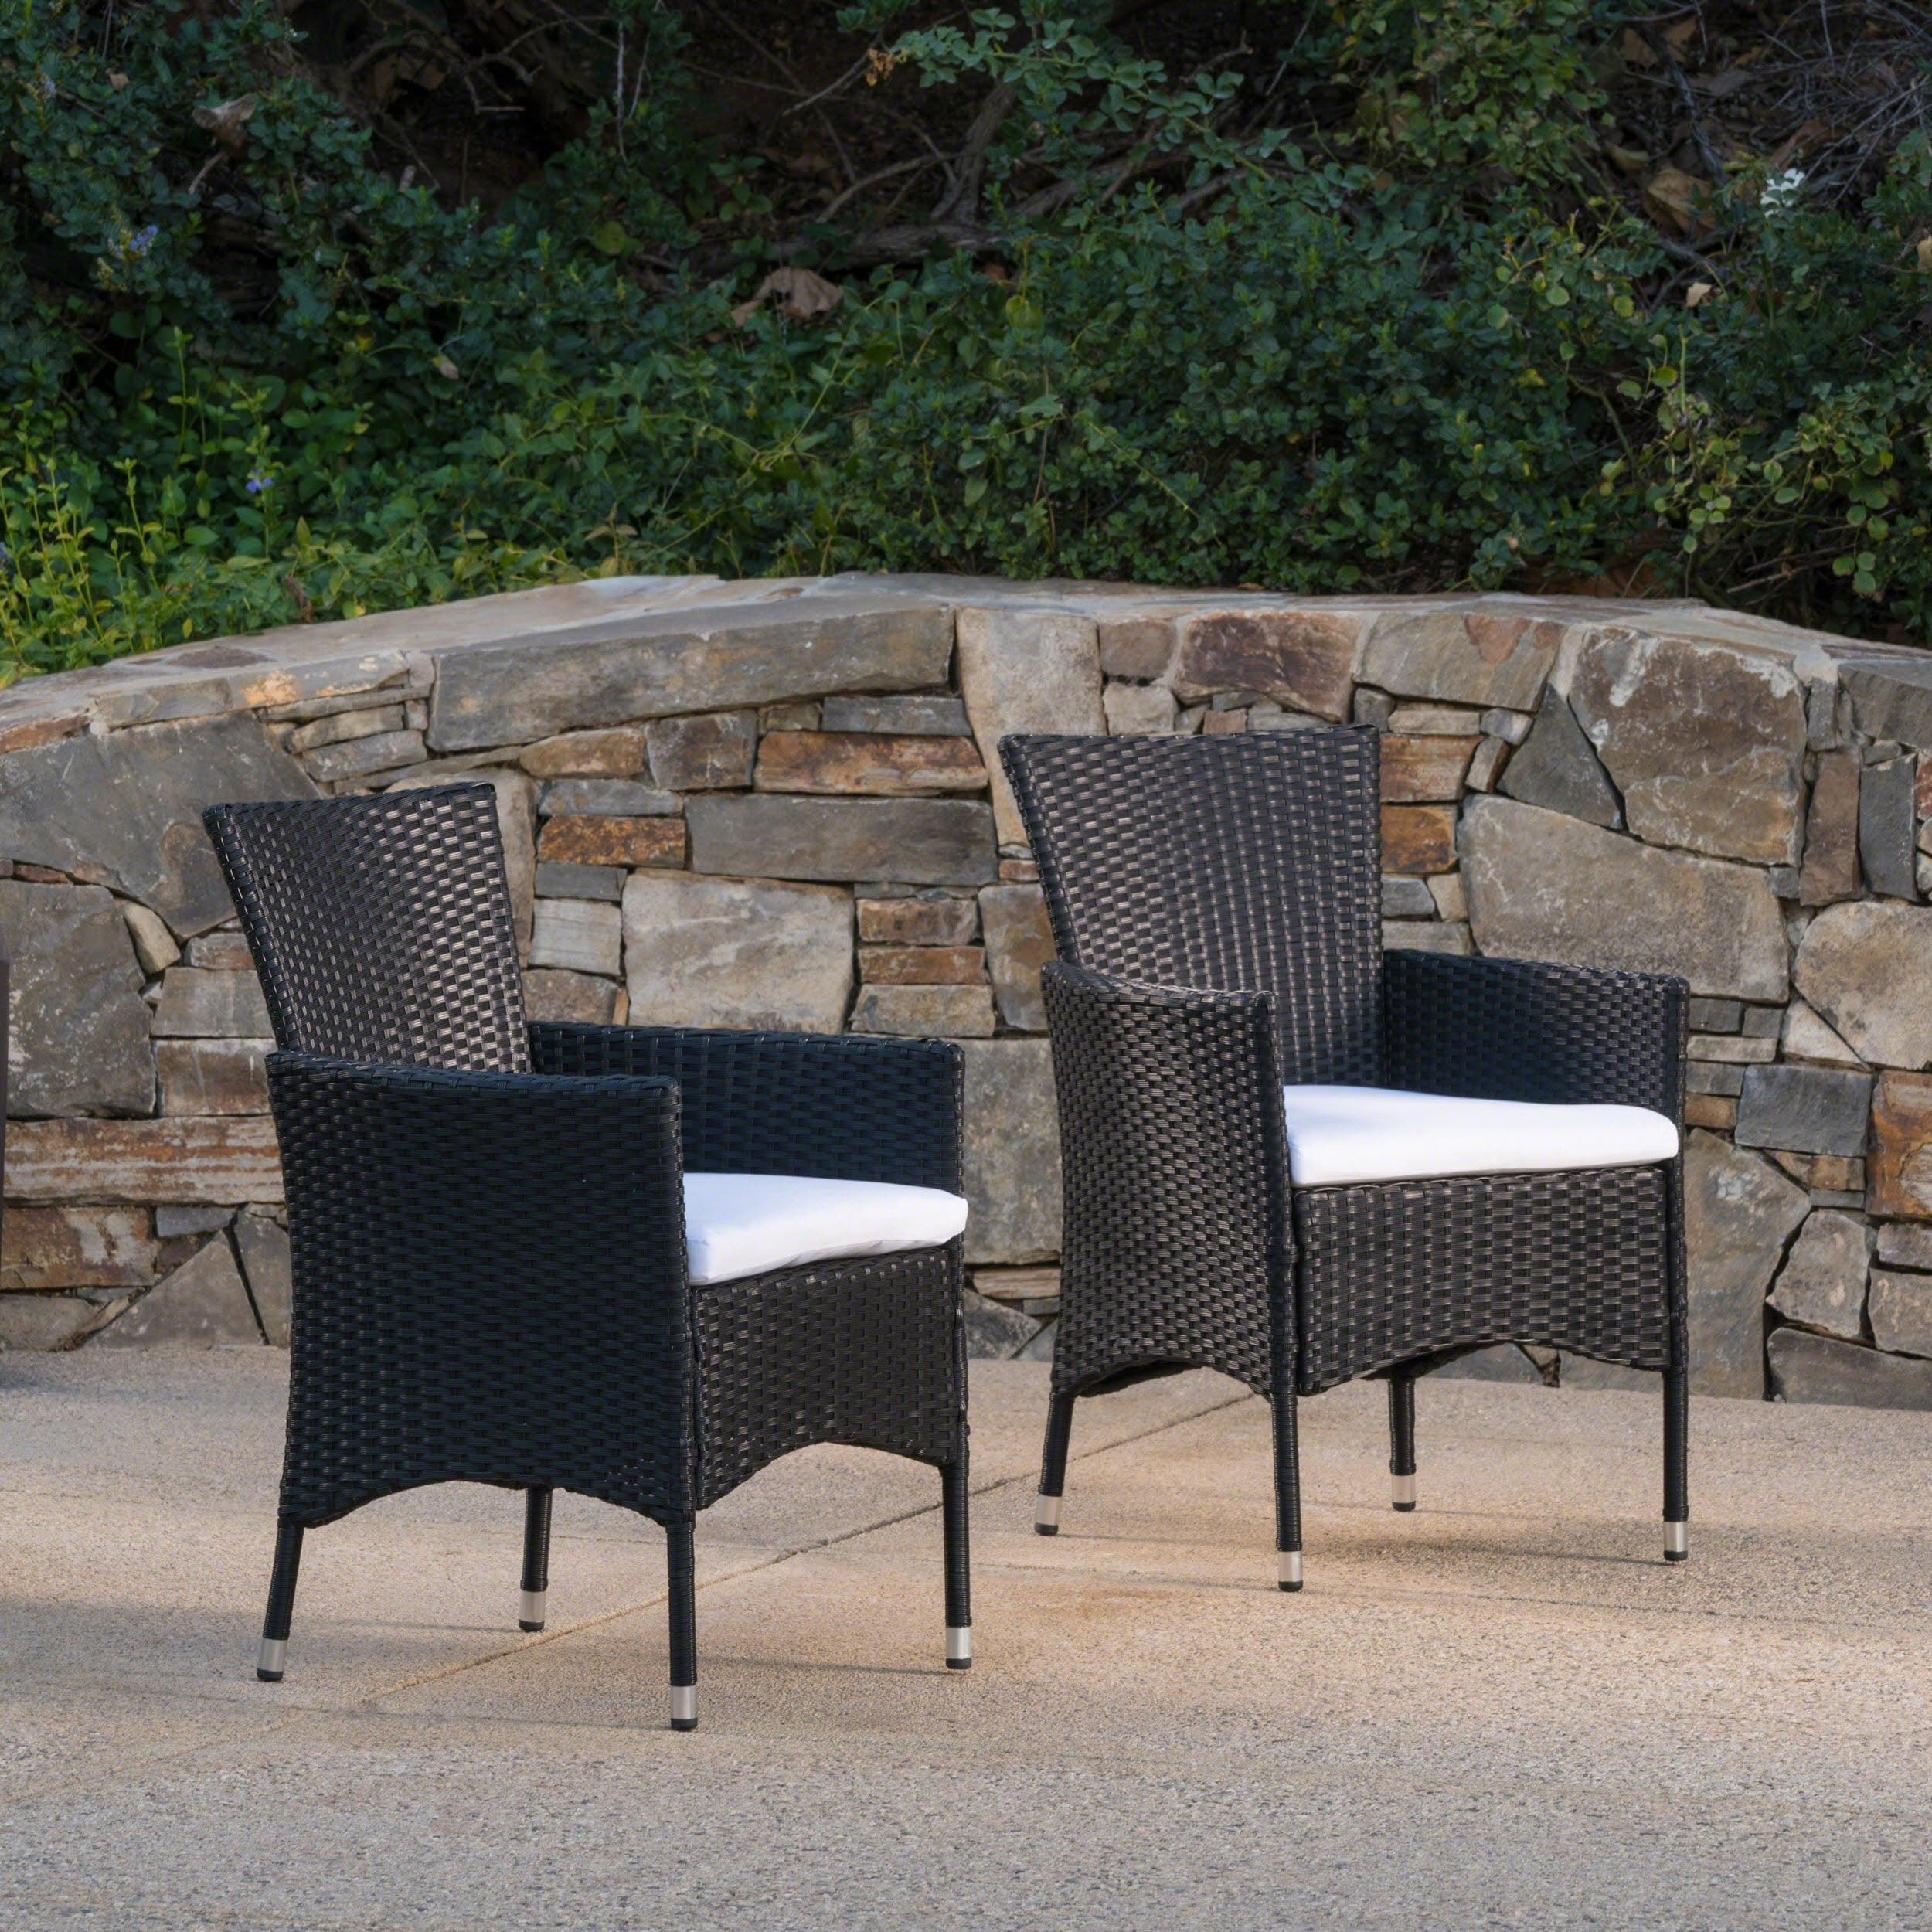 Shop Malta Outdoor Wicker Dining Chair with Cushion by Christopher Knight Home (Set of 2) - On Sale - Free Shipping Today - Overstock.com - 10170620